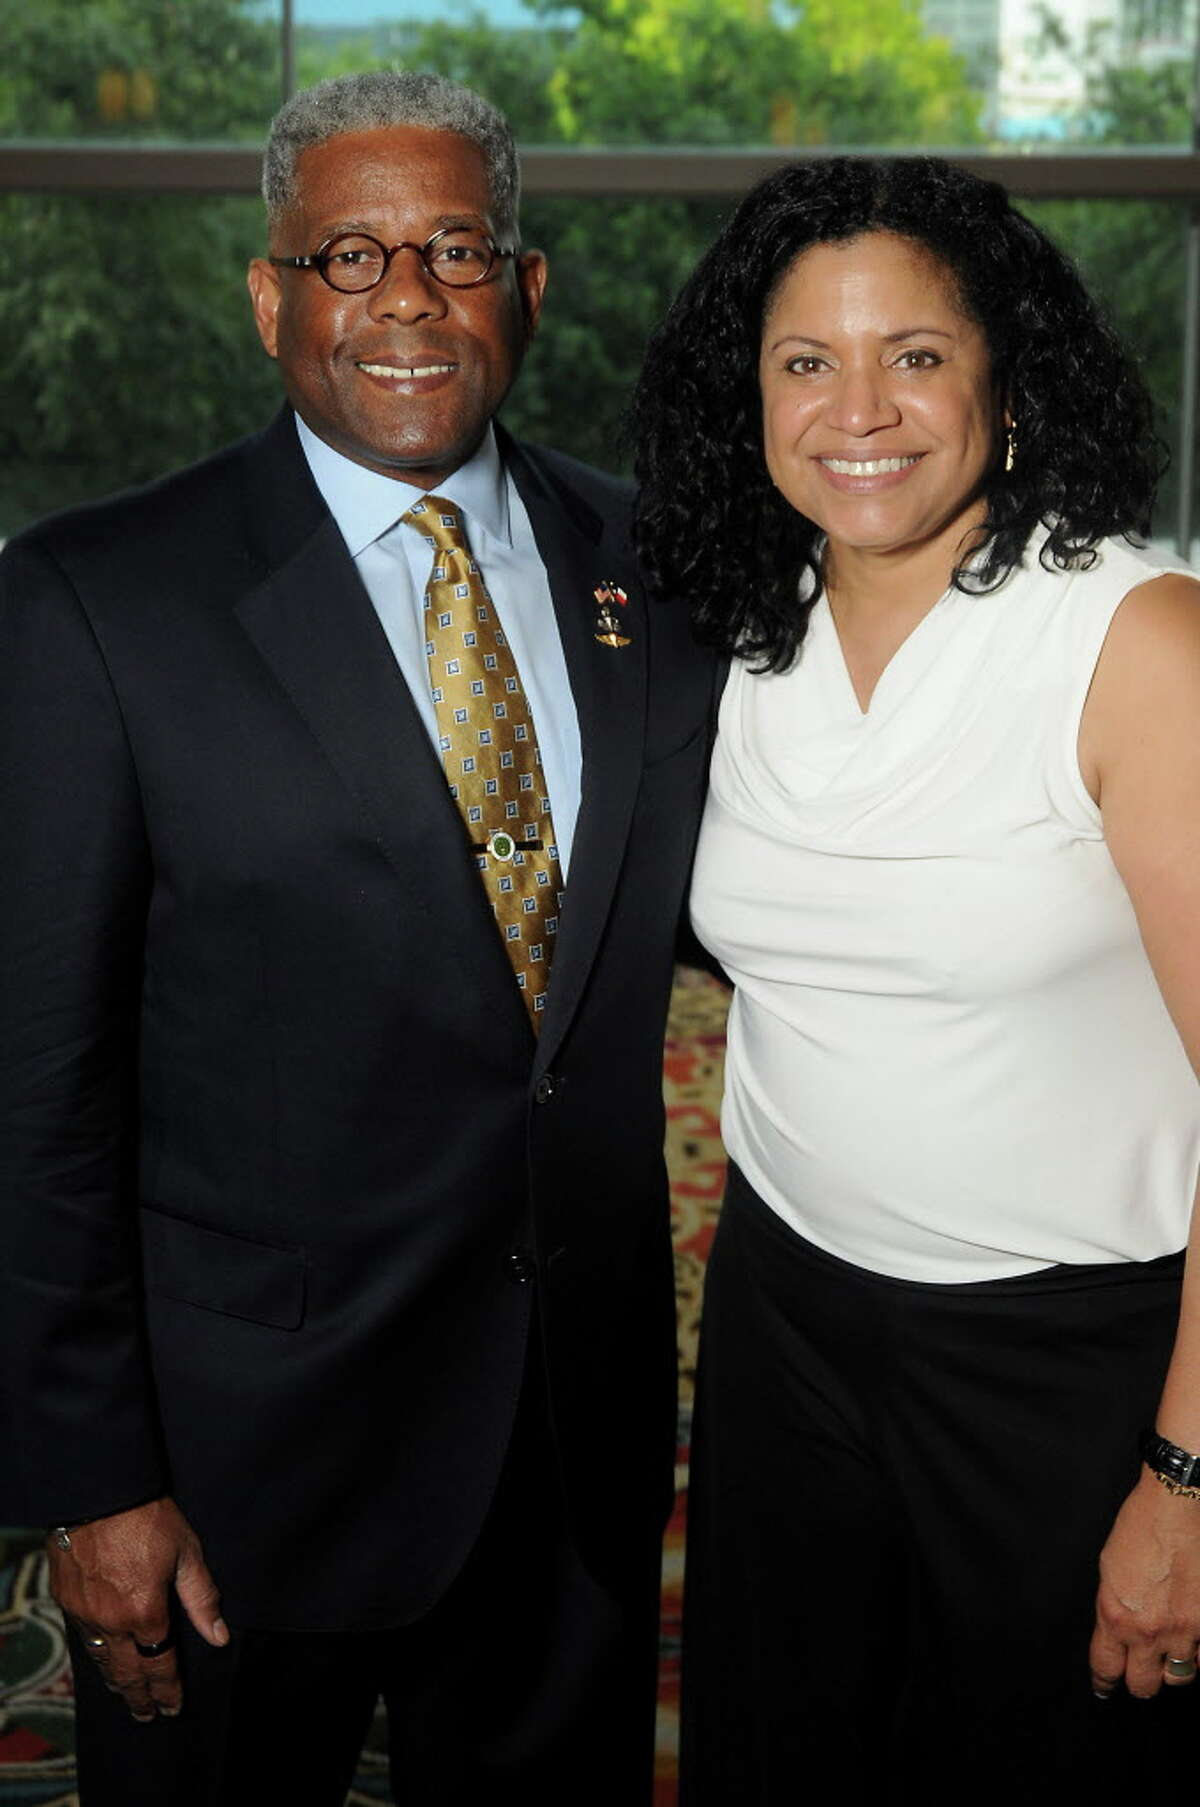 Lt. Col Allen West and his wife Angela at the 2016 Kickstart Kids Gala